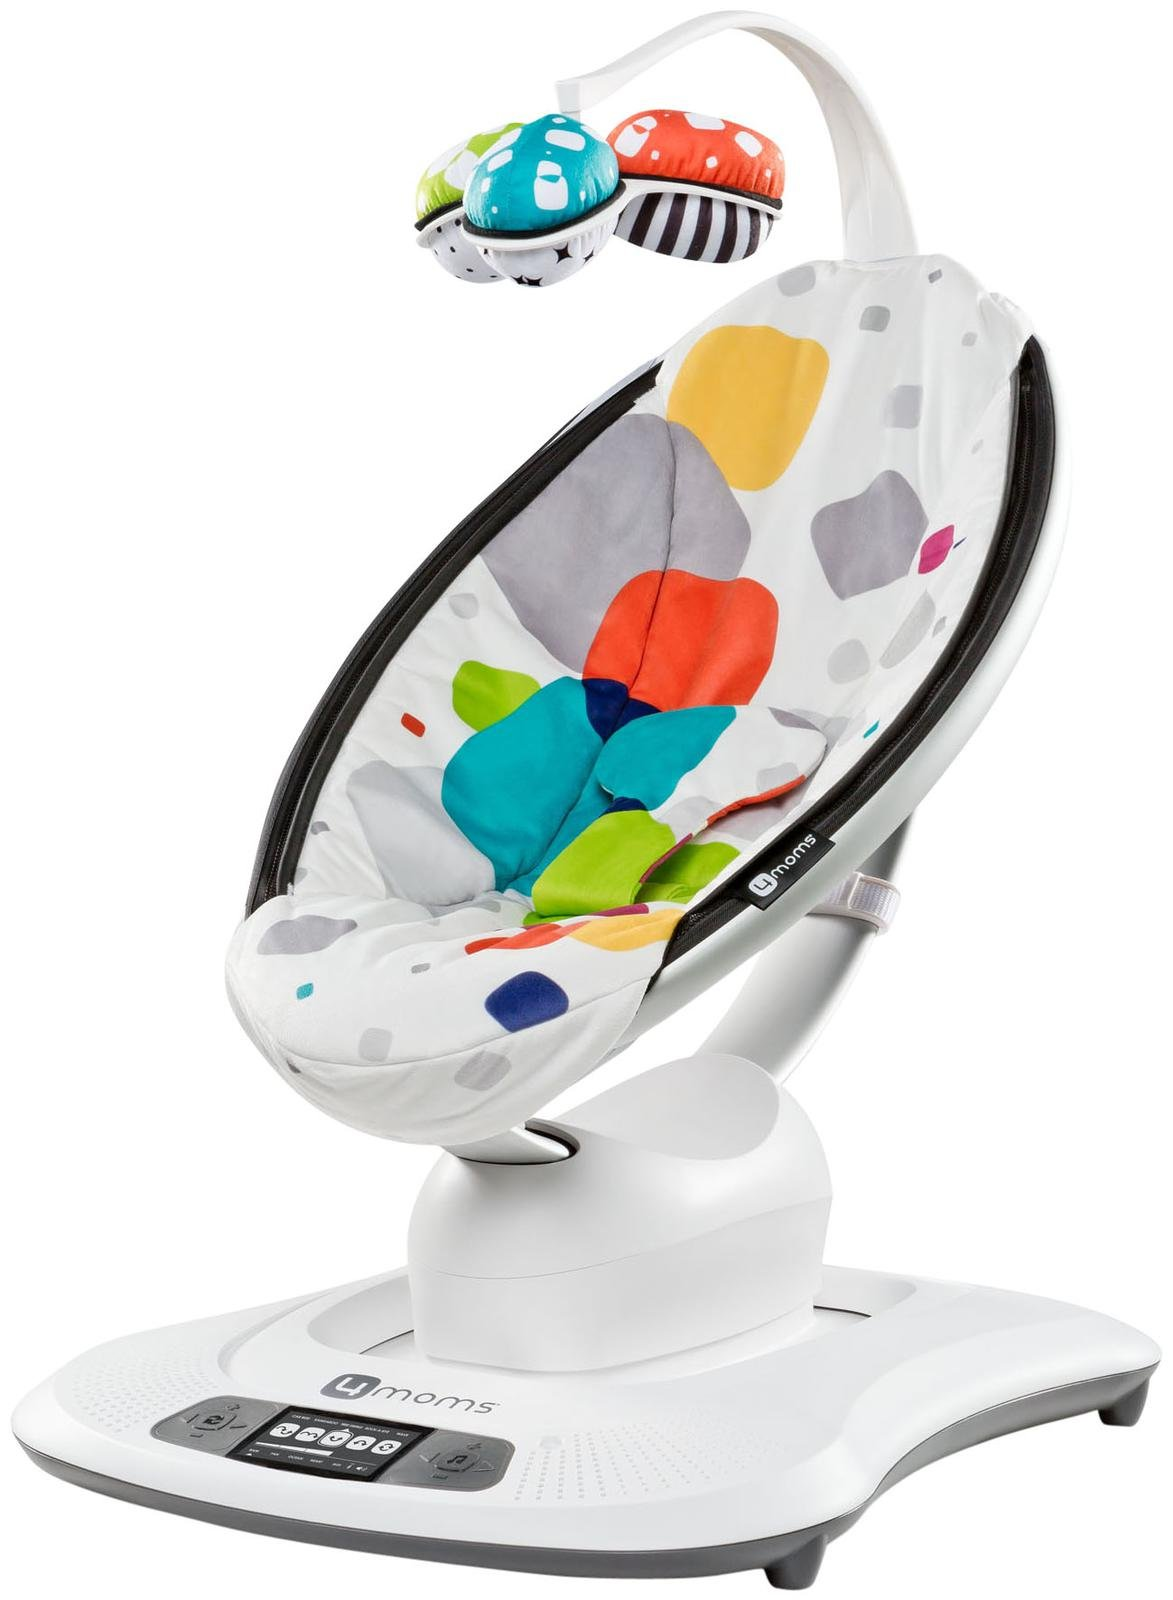 4moms Mamaroo Bouncer - 2015 - Multi-Color Plush